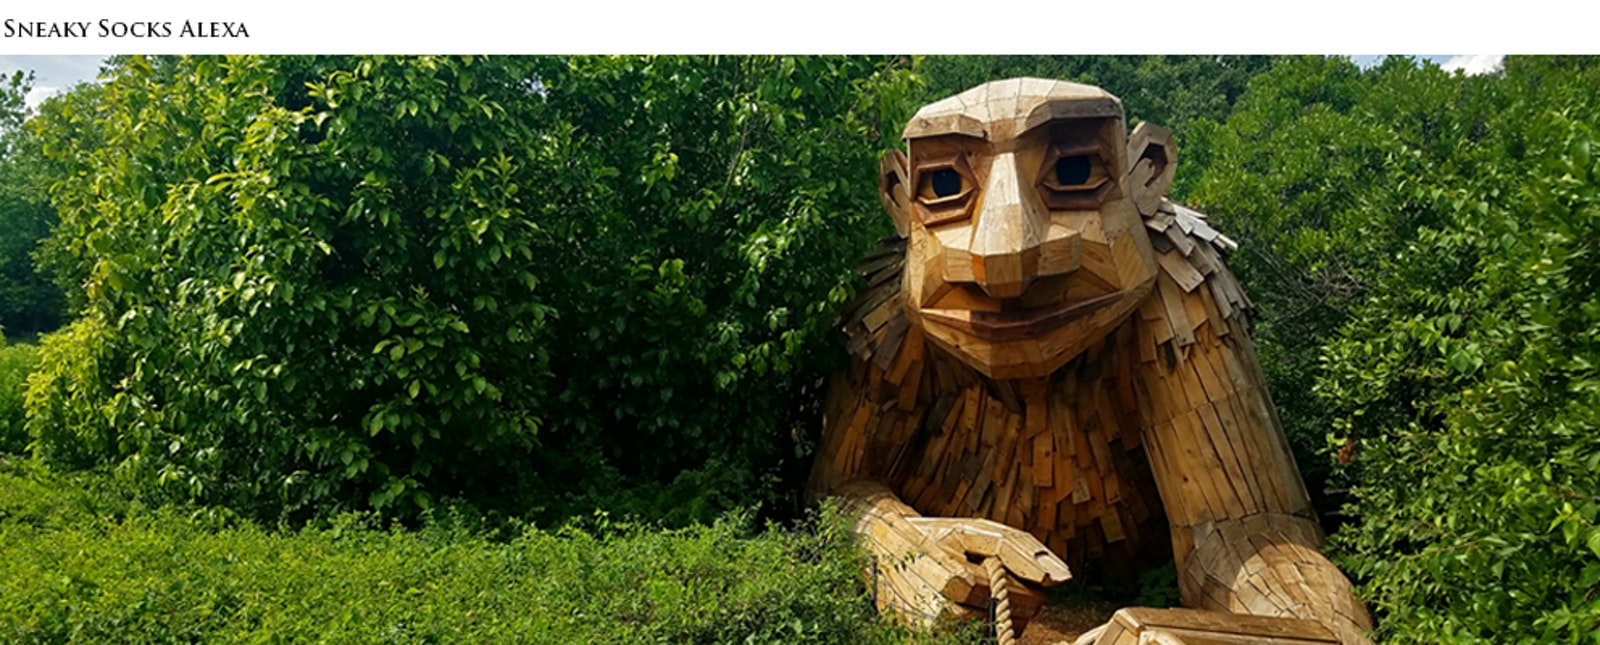 One of six troll sculptures made of trash wood by Danish artist Thomas Dambo